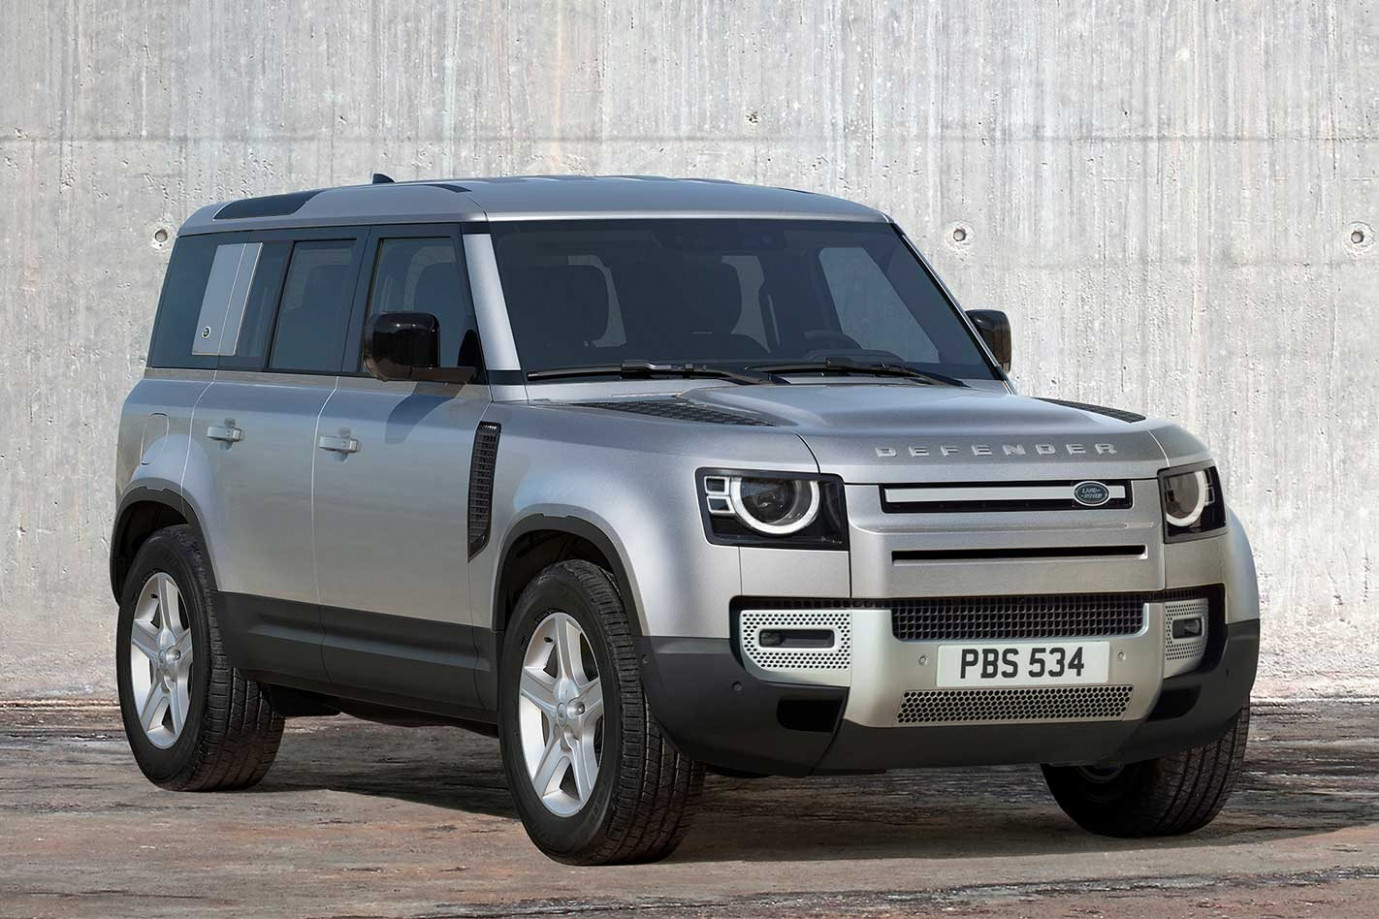 New Concept 2022 Land Rover Defender